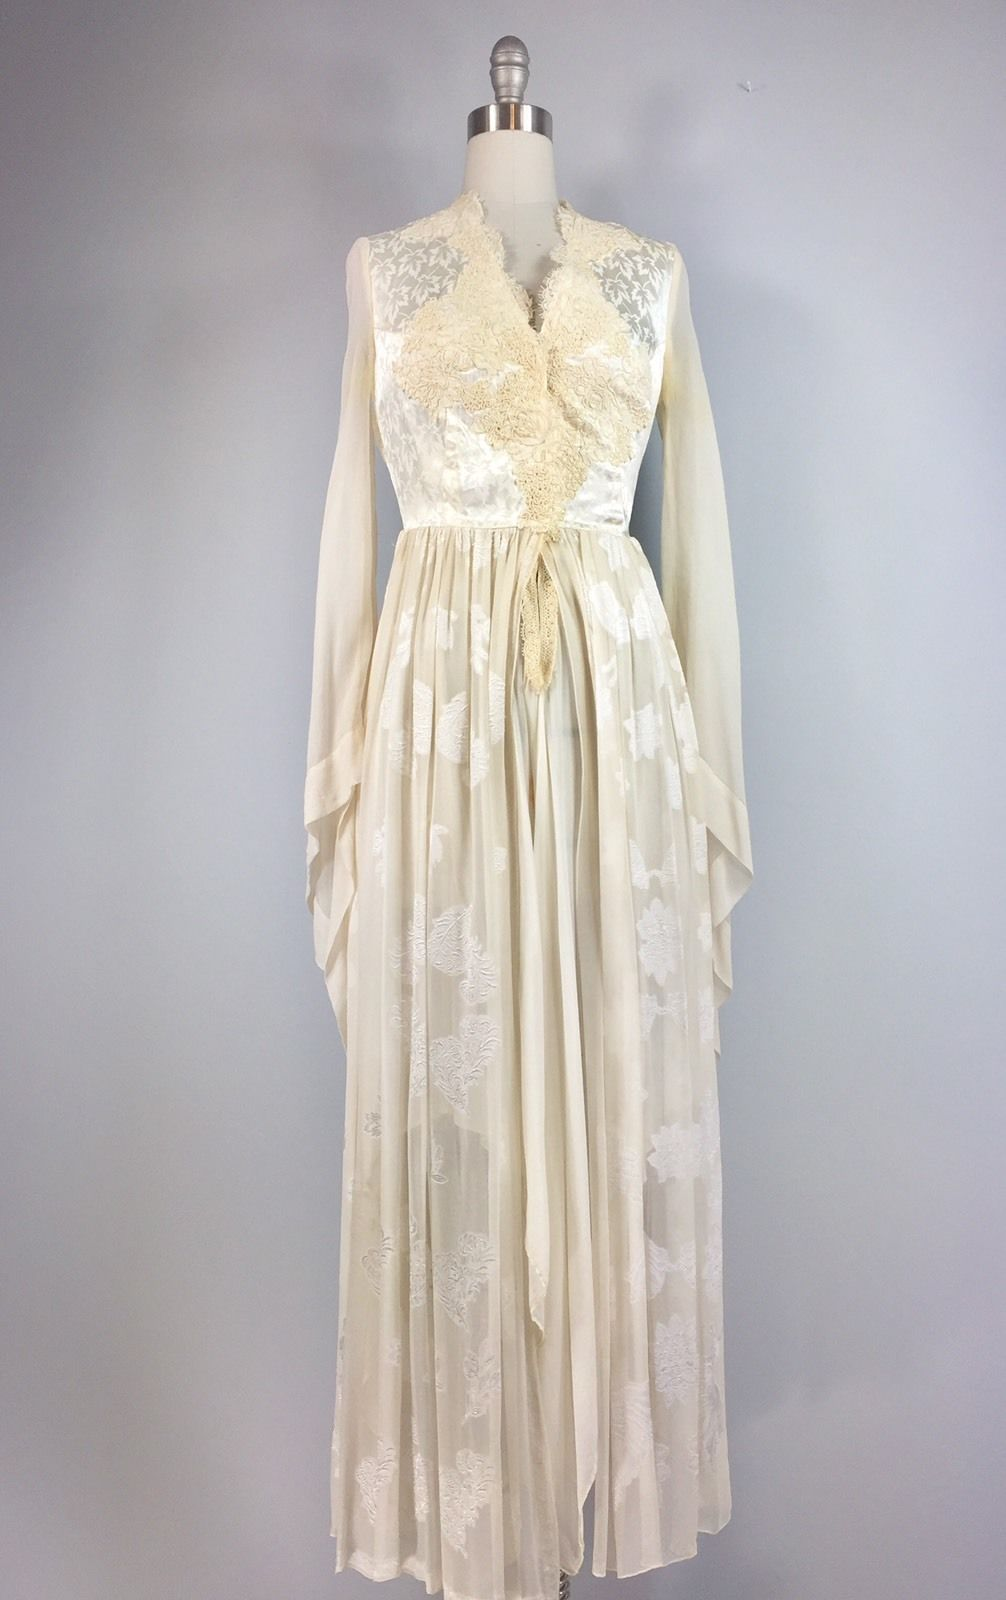 Janine's London 70s Dress Vintage 1970s off White wedding dress Stevie Nicks Hippie 33 bust